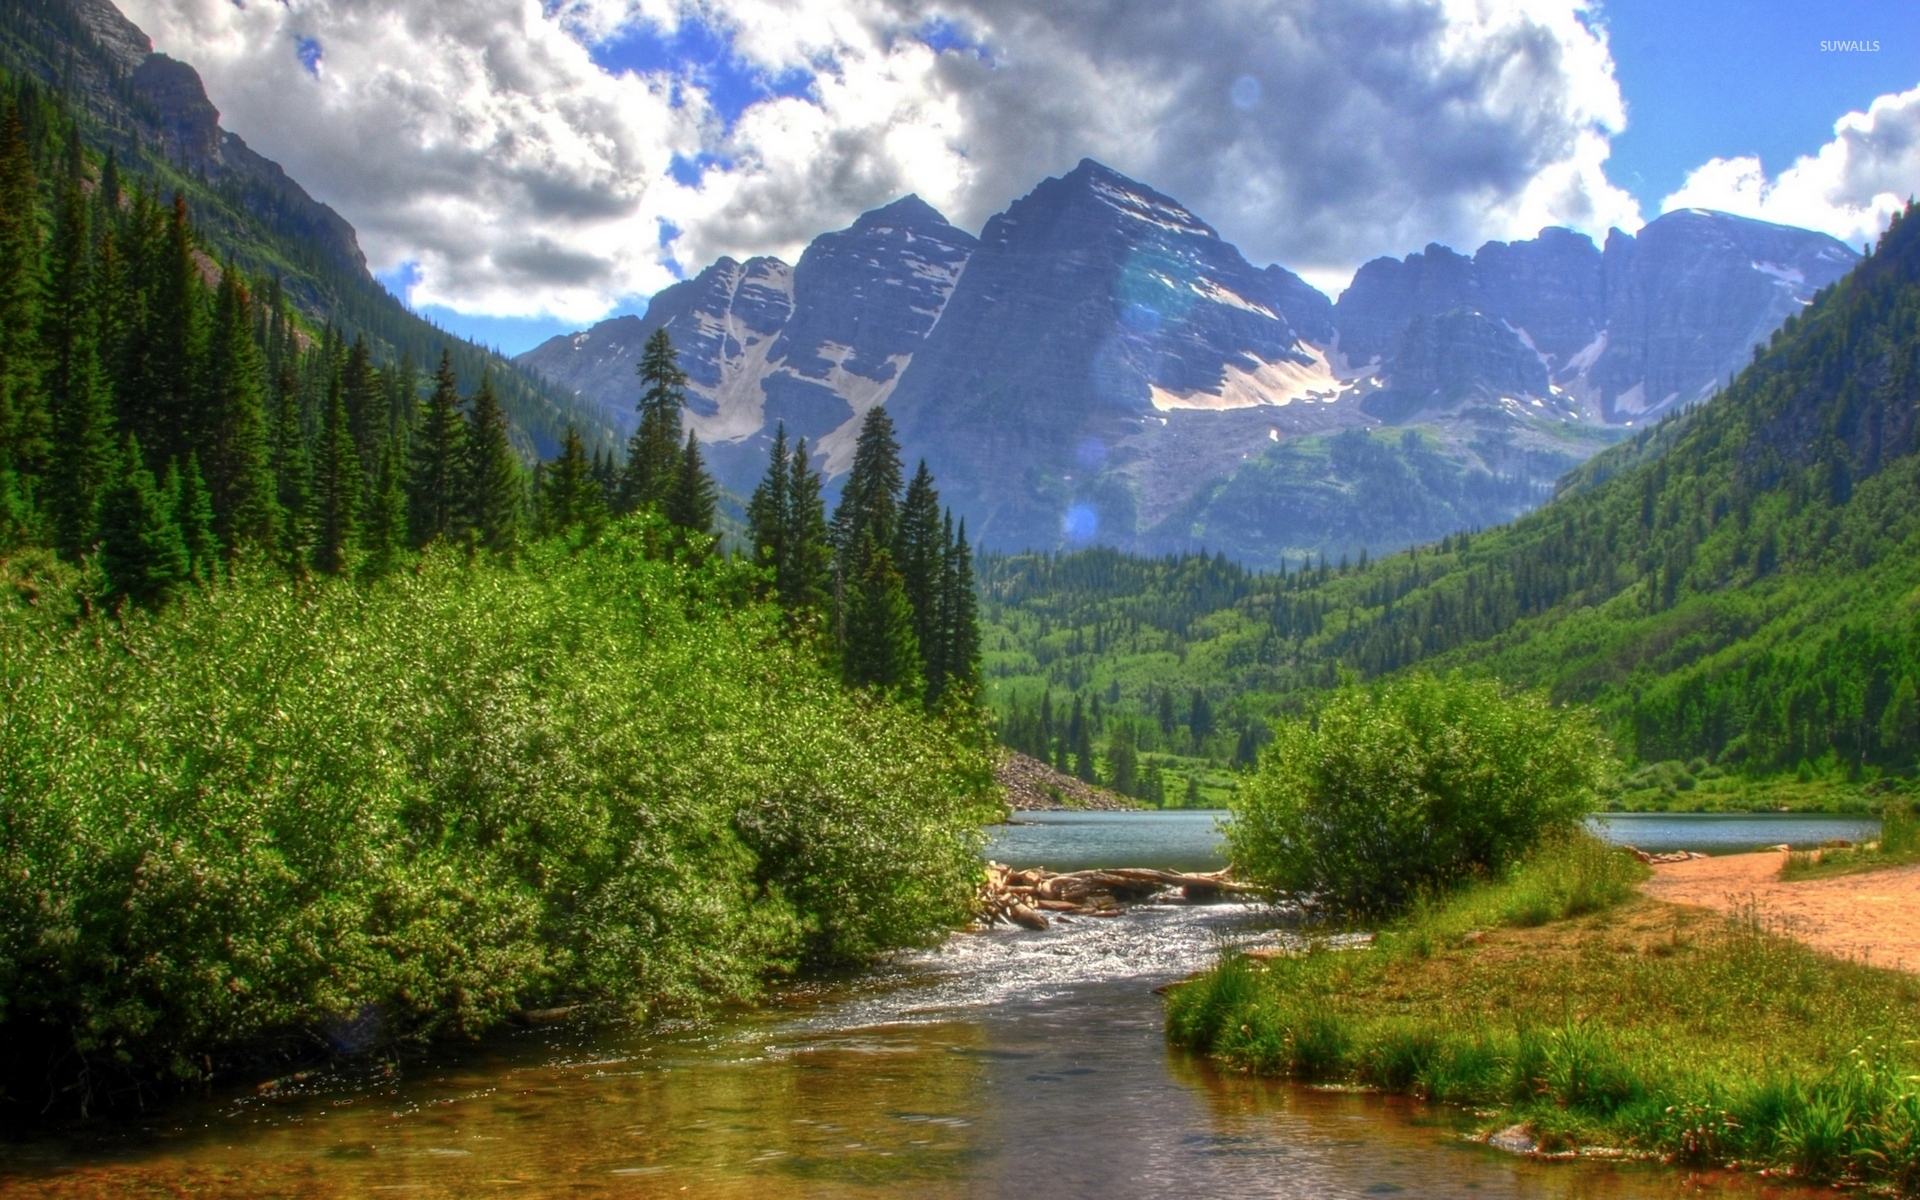 Summer day by the snowy mountains wallpaper